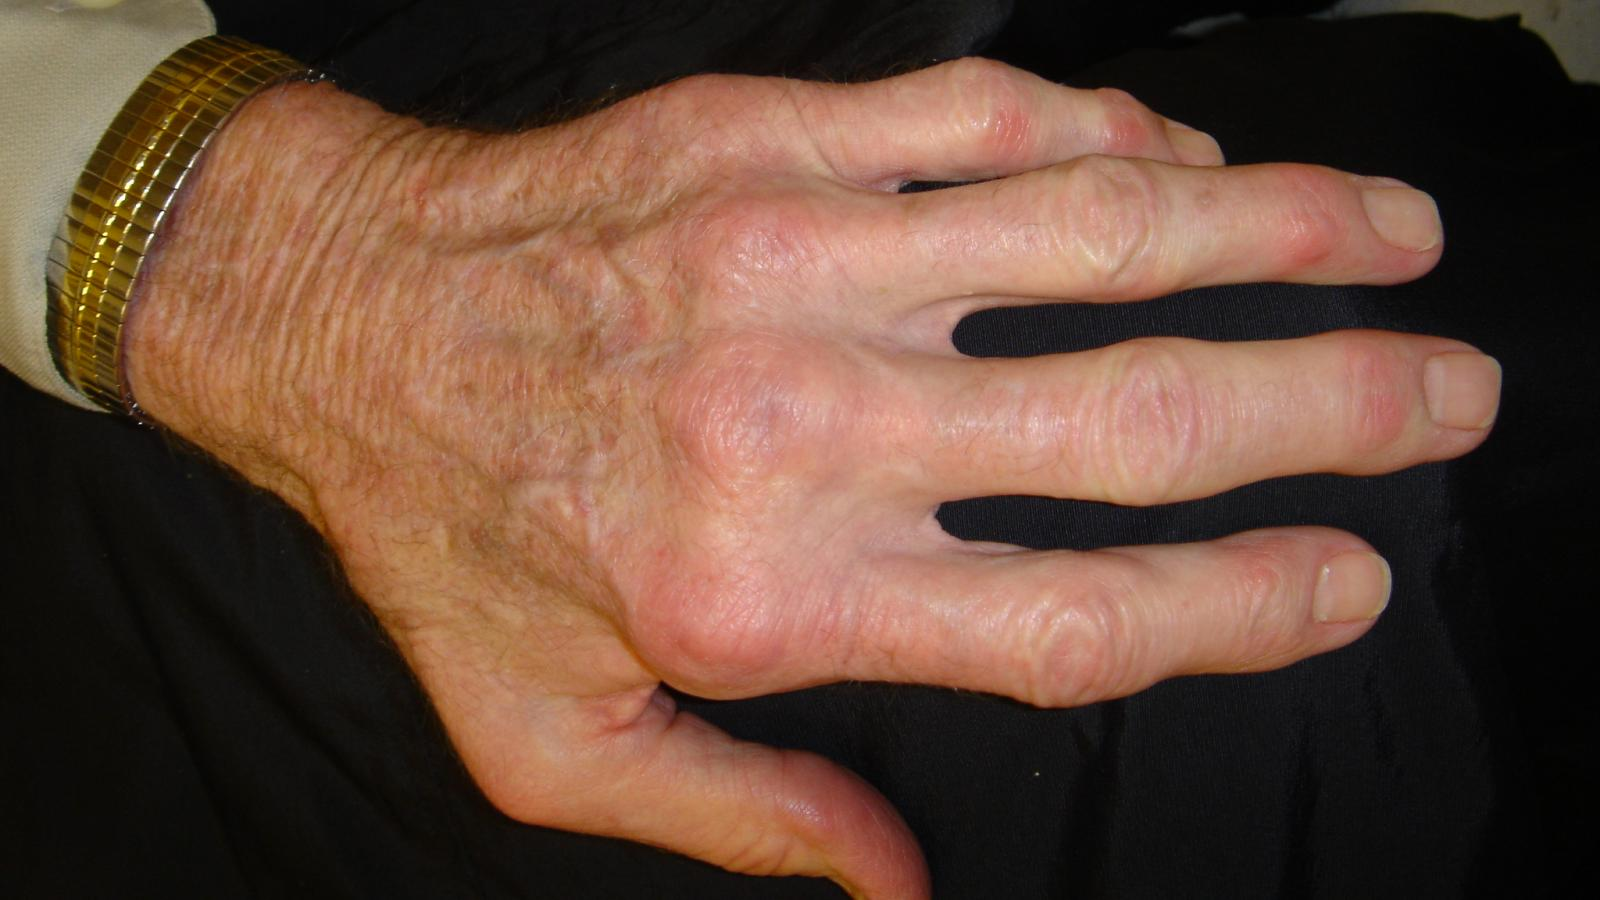 RA Hands Difficult deformity